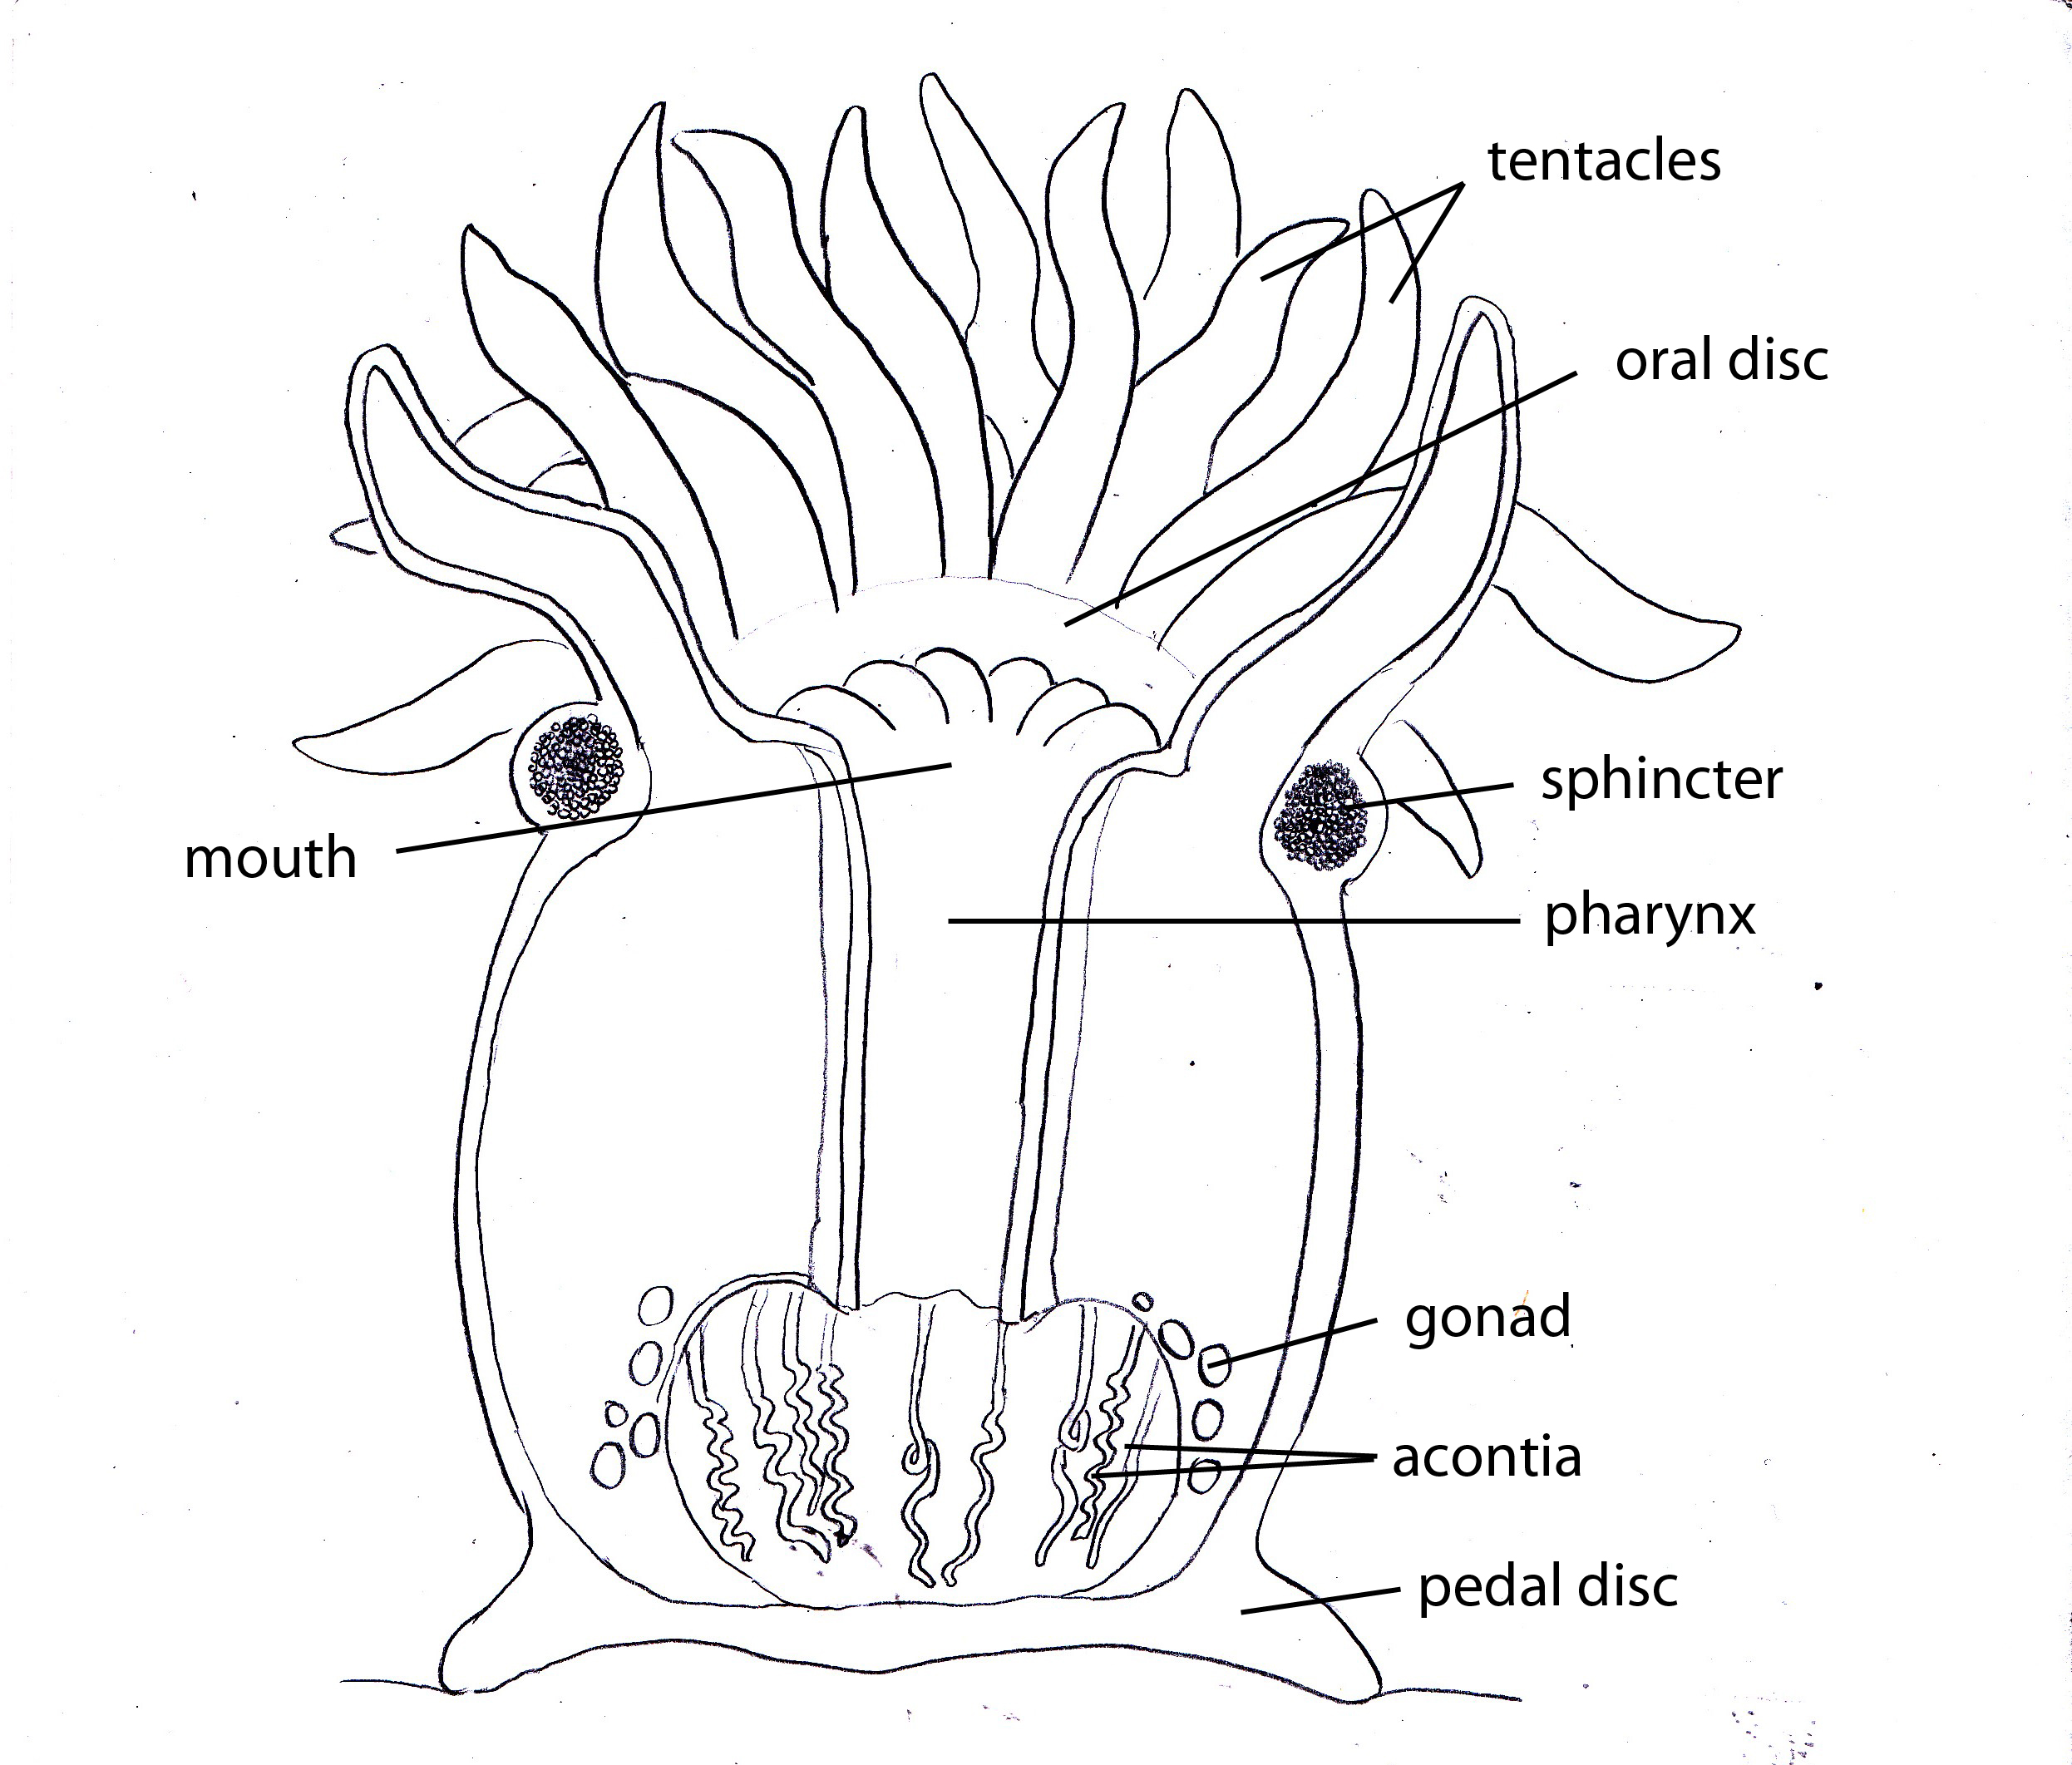 Hydra Well Labelled Diagram Wiring Diagrams For Dummies Of Sea Anemone Engine And Earthworm Rotifer